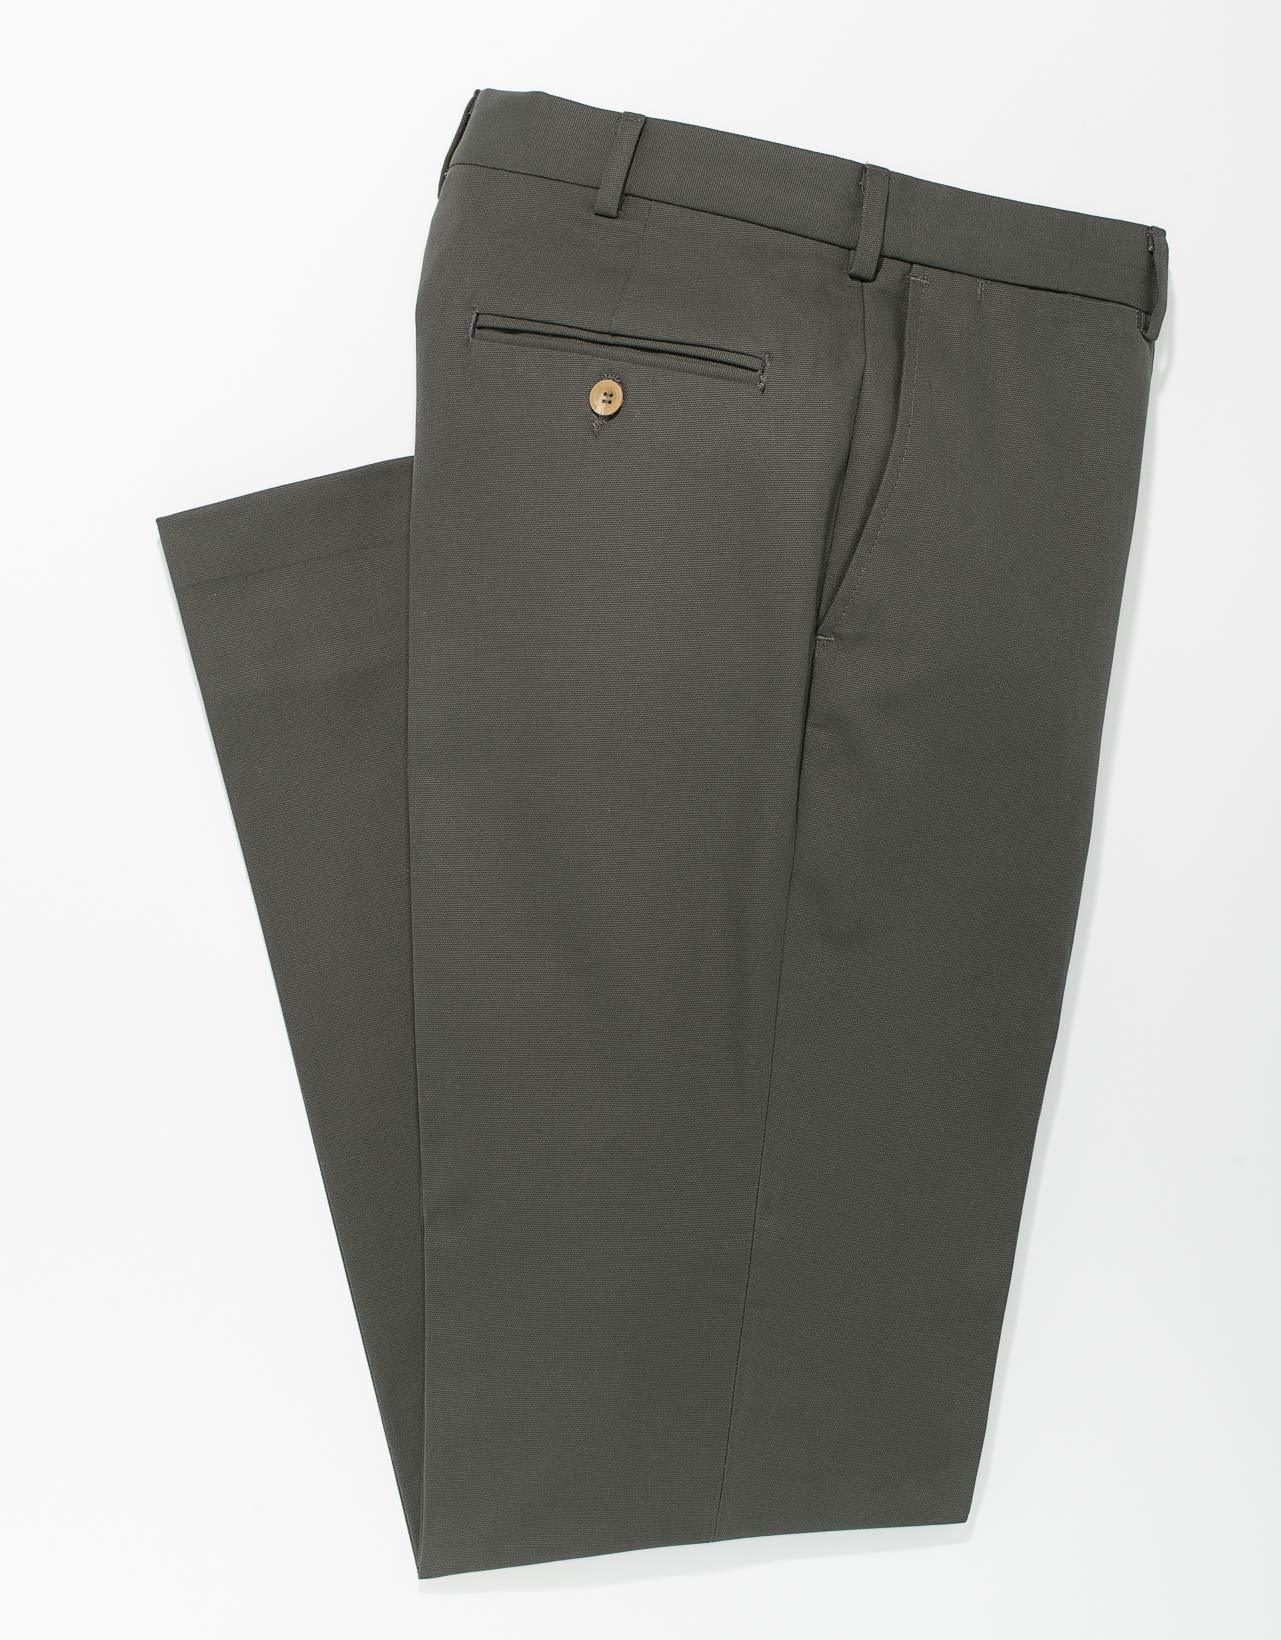 GREY BRUSHED COTTON CANVAS TROUSERS- CLASSIC FIT